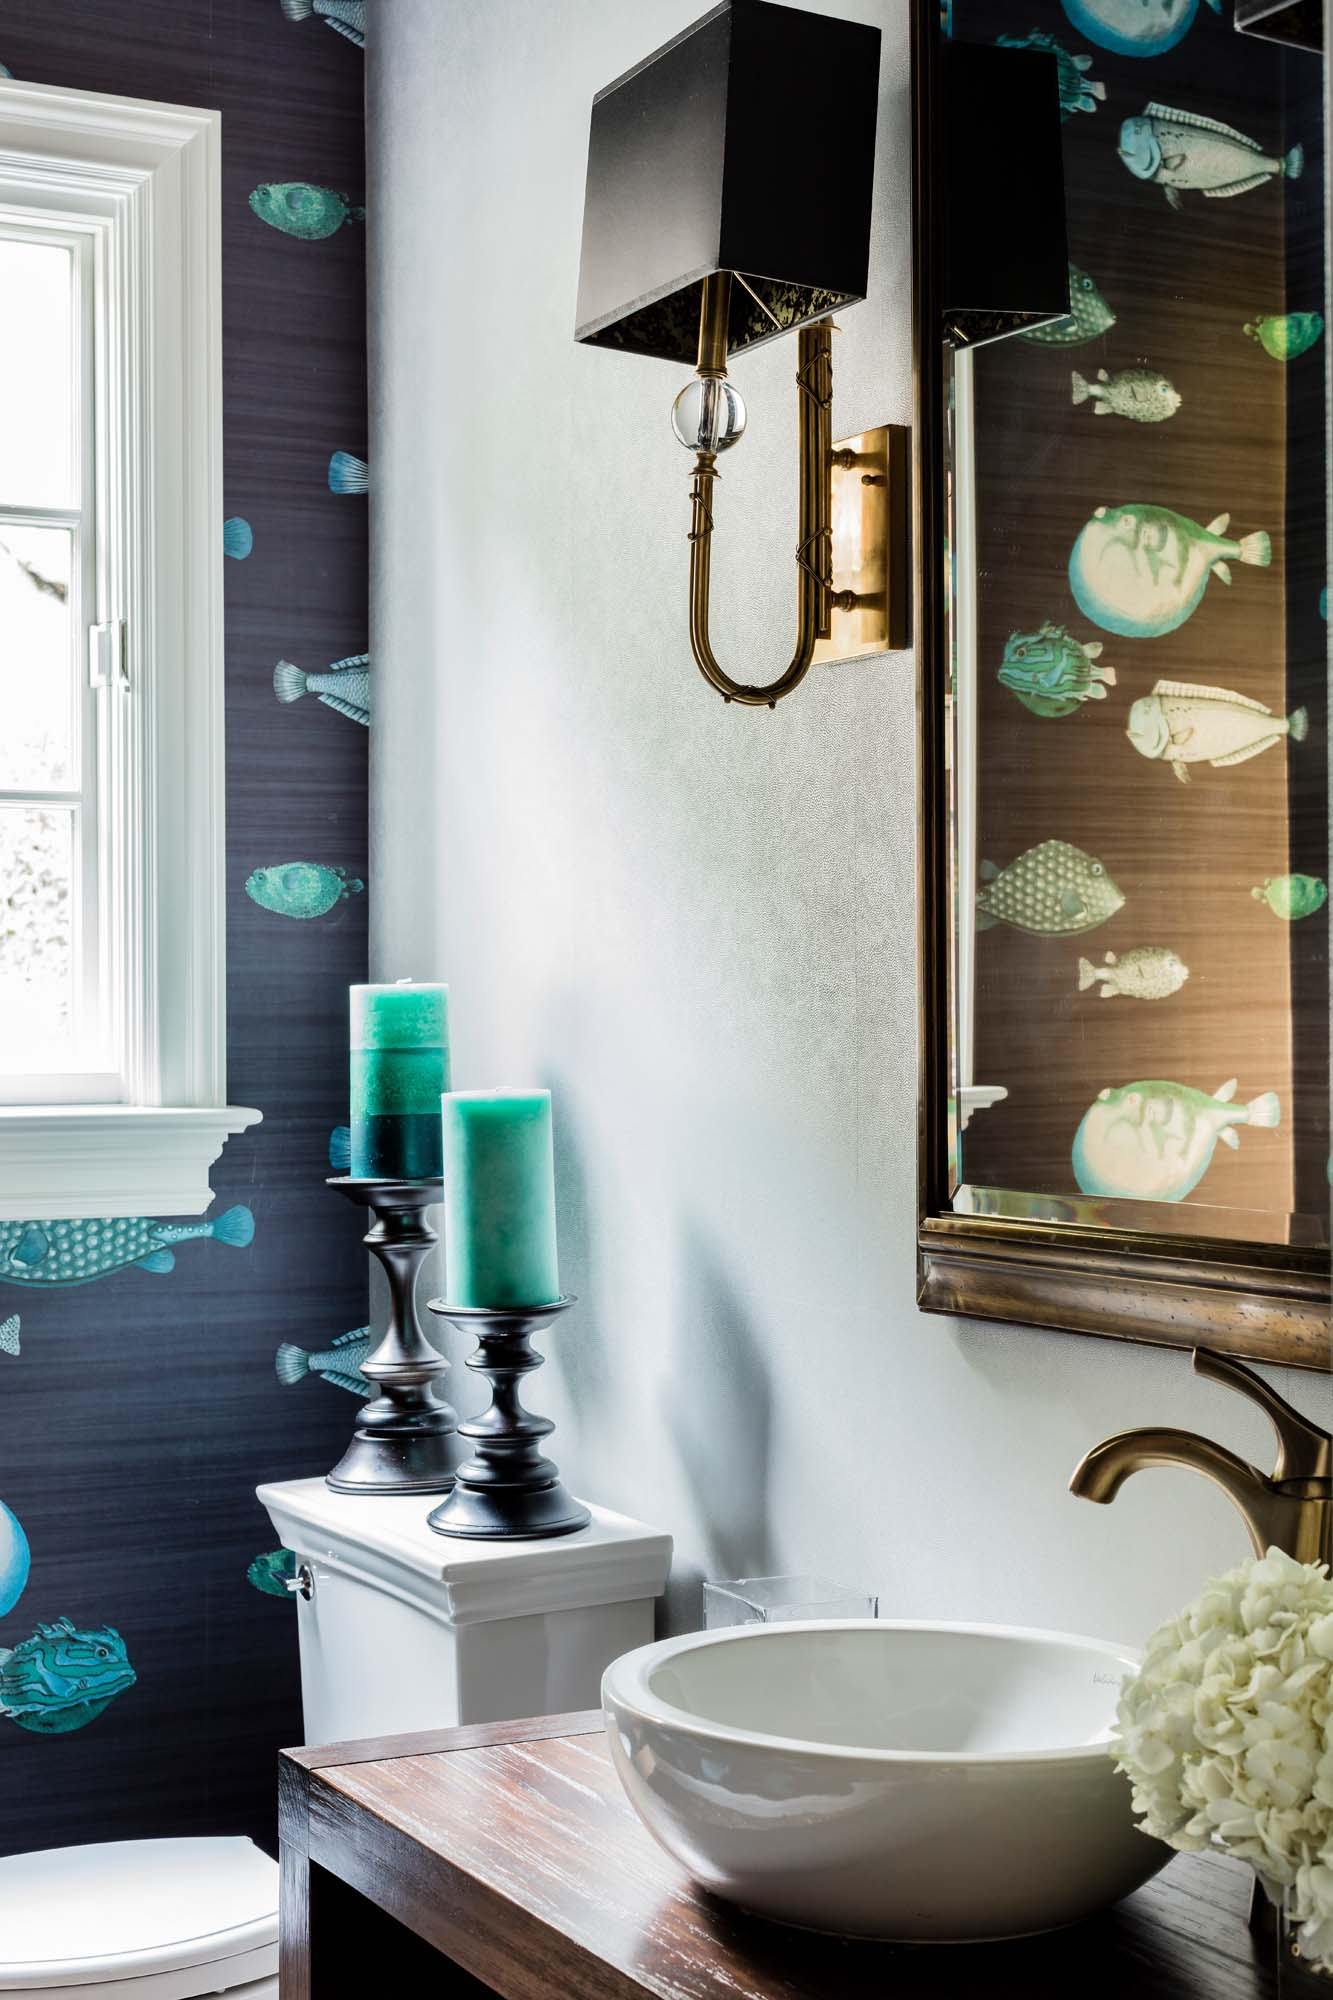 Powder room with white sink, candles and teal fish wallpaper, cole and son, fornasetti, sense tempo, acquario, fish wallpaper, visual comfort, brass light, brass sconce